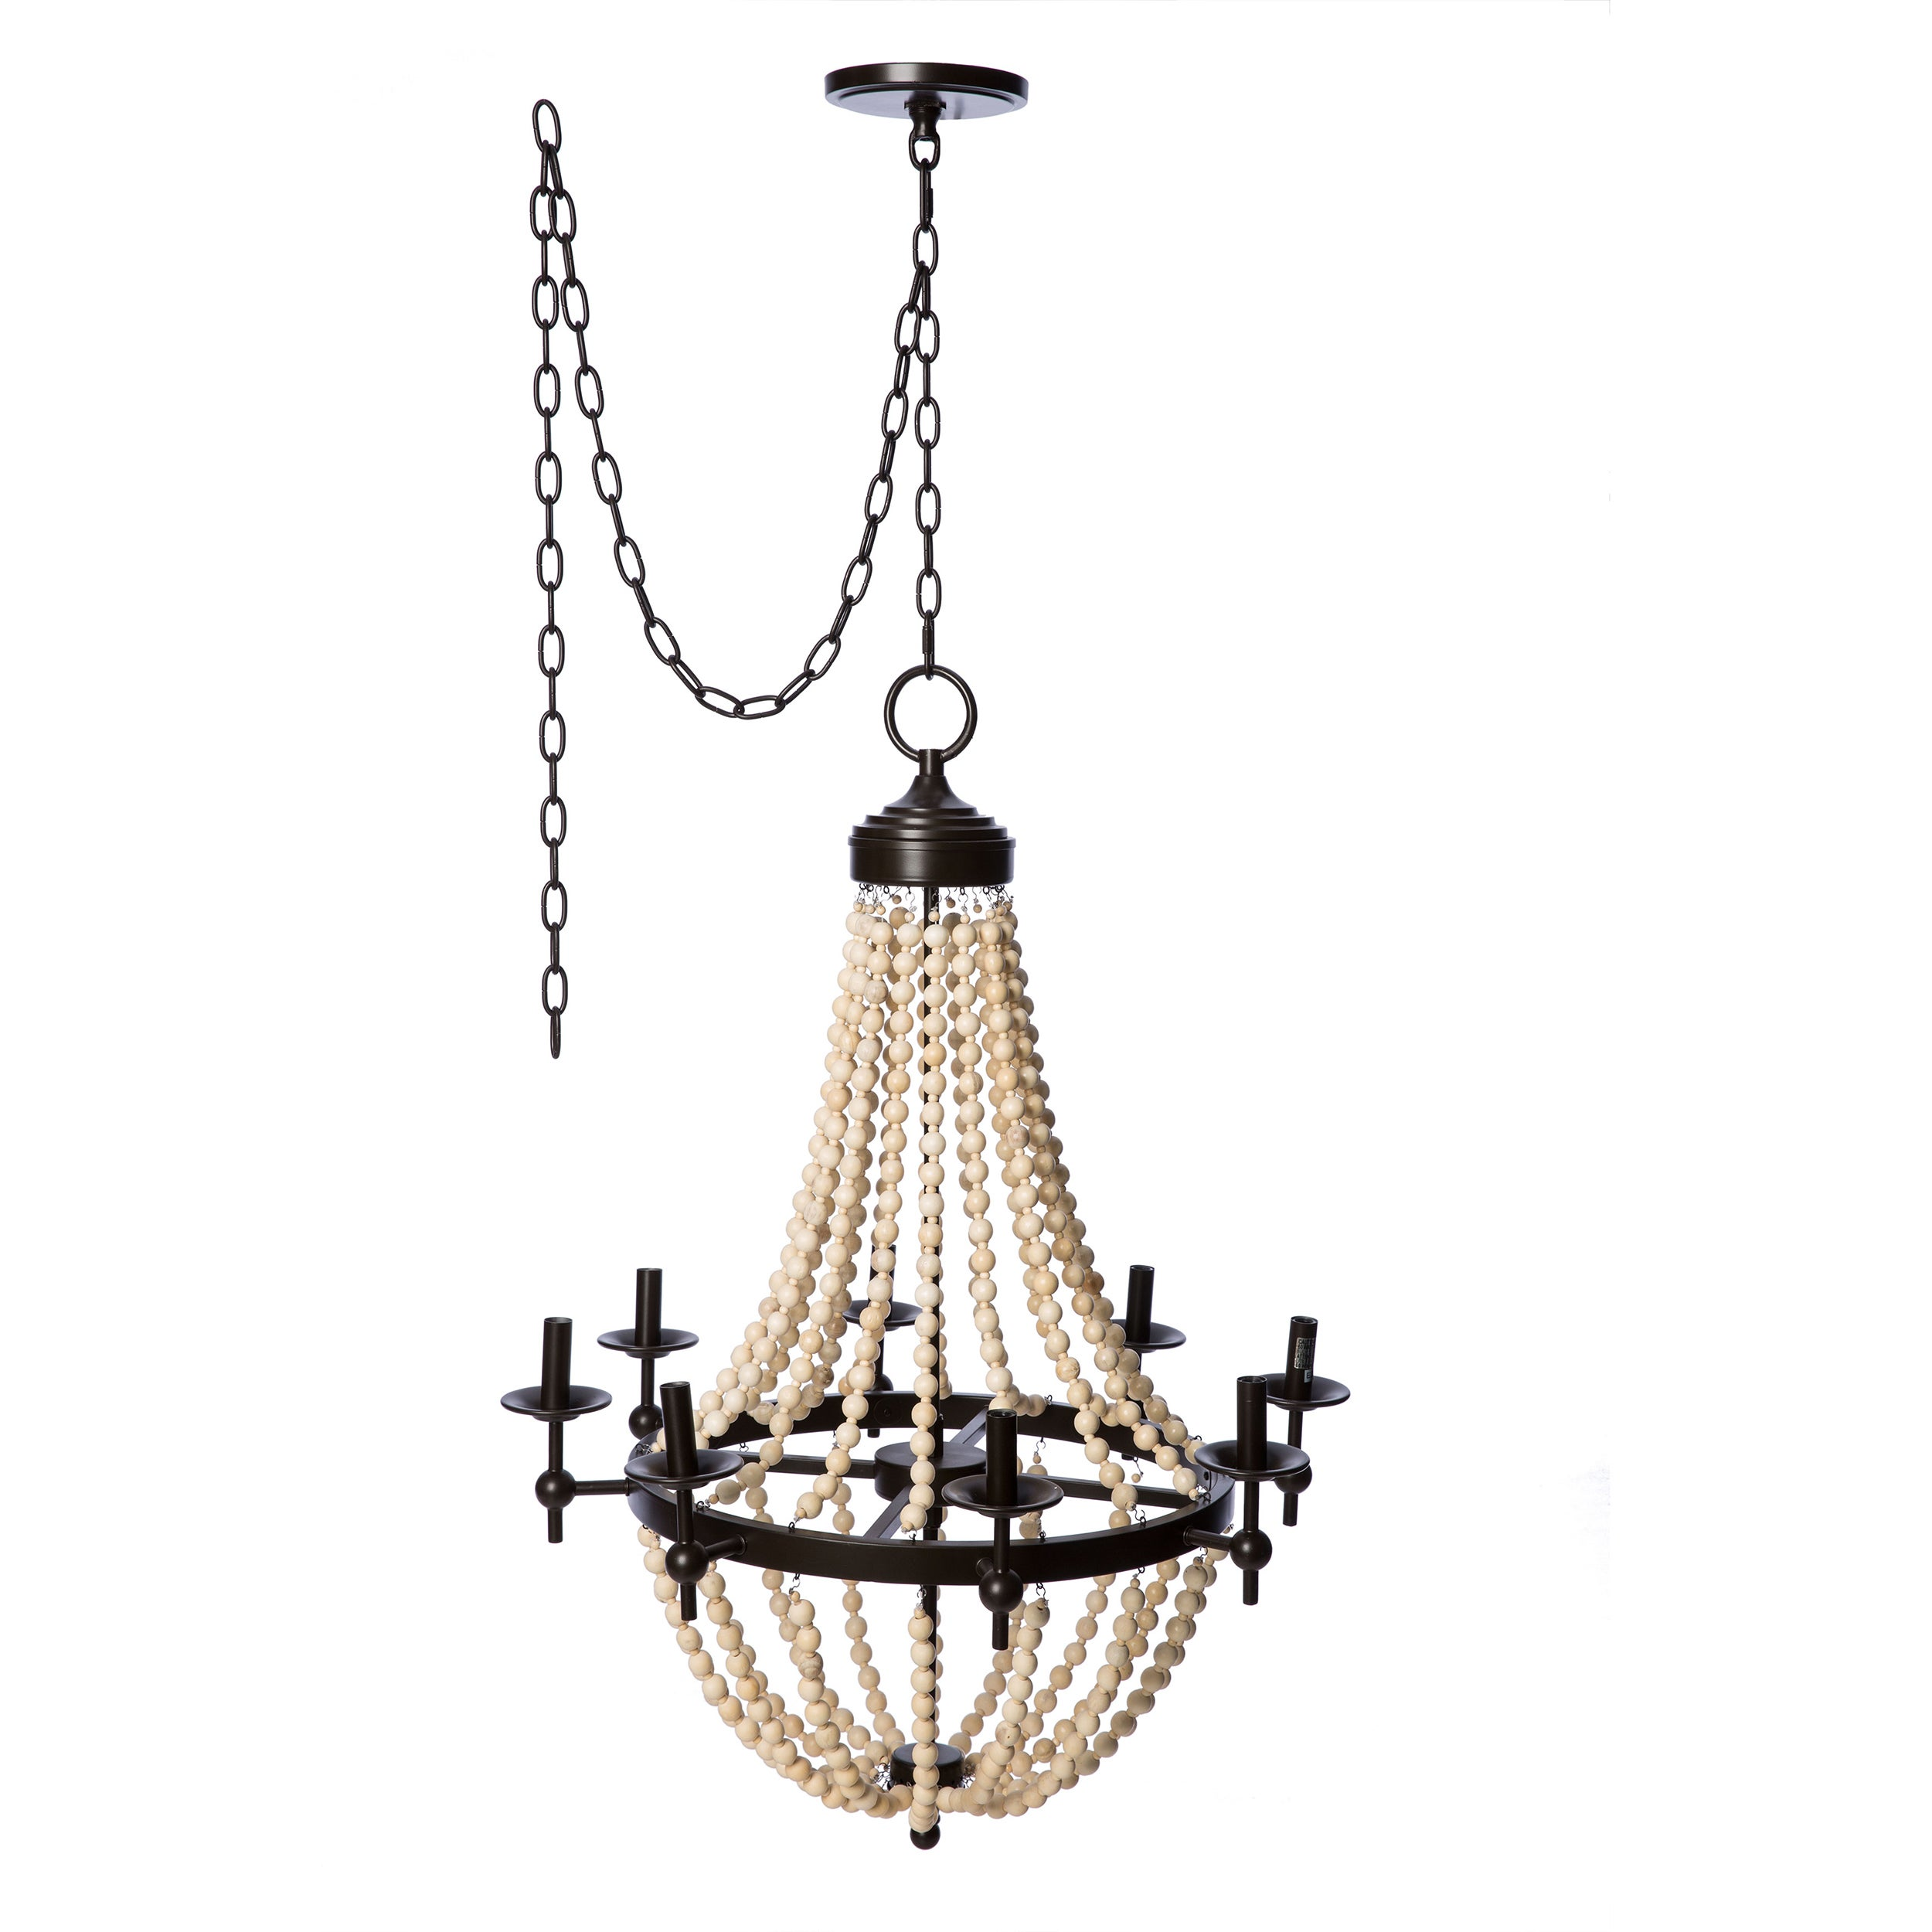 Sonoma Natural Beaded Black 8-light Chandelier - Free Shipping Today -  Overstock.com - 16476919